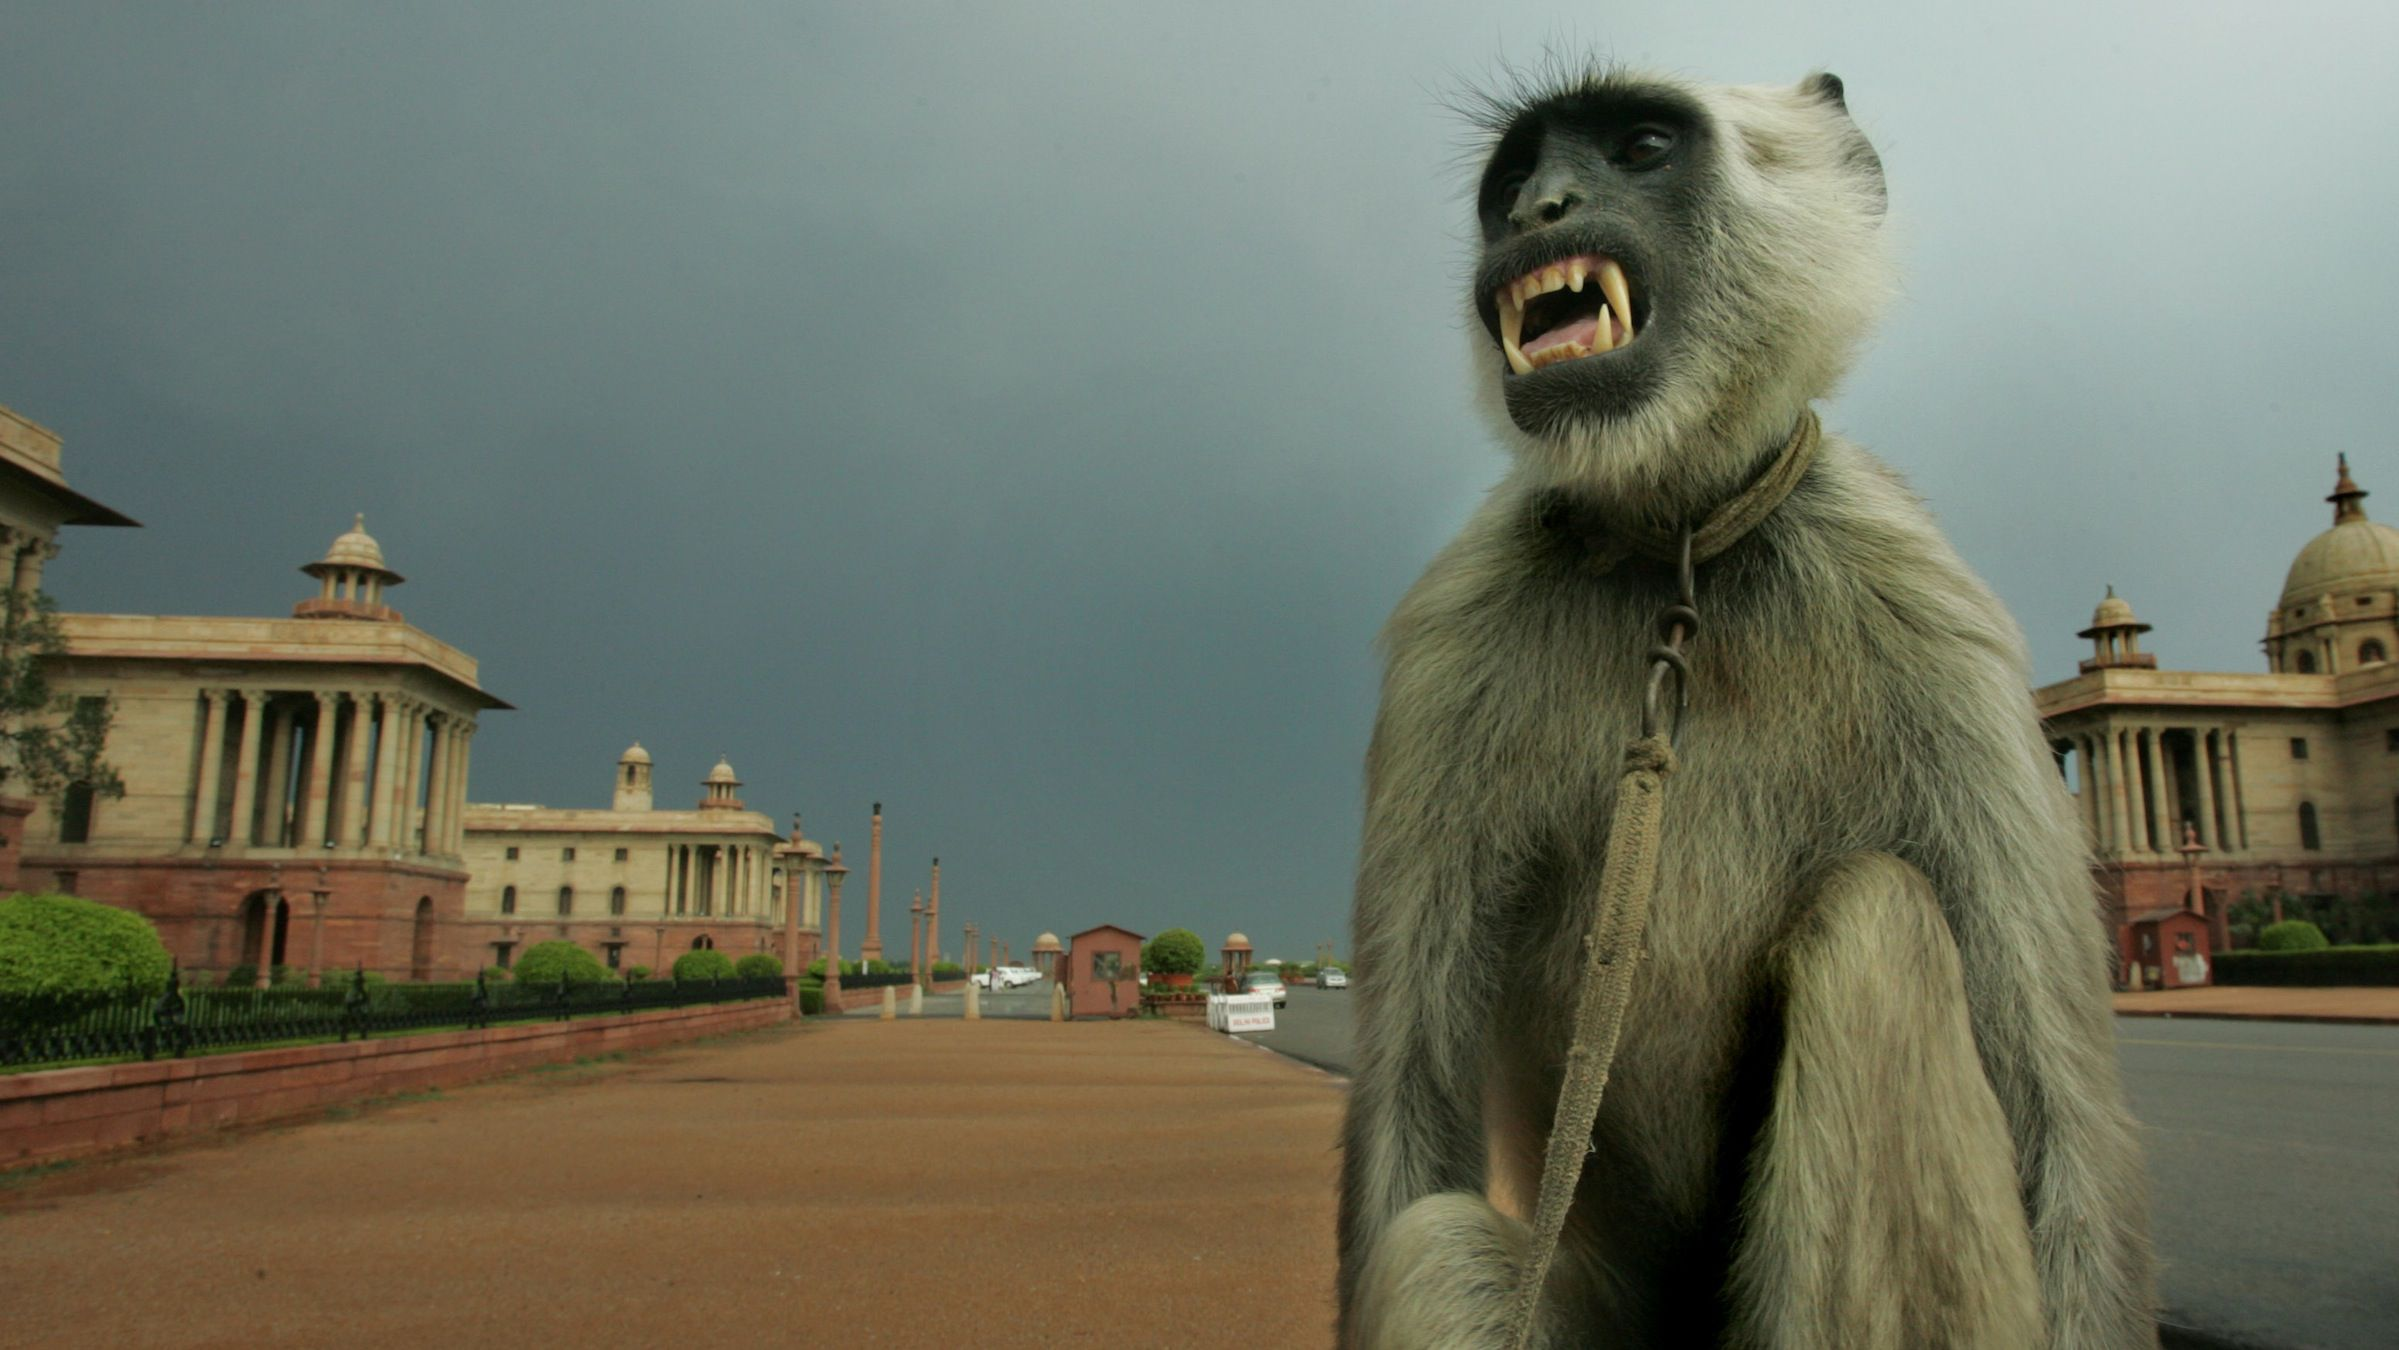 A tamed langur, a particularly fierce breed of apes, used by its owner as deterrent against rhesus monkeys in government offices, grimaces at its owner, unseen, as he dries up after a rainstorm near the Presidential Palace complex in New Delhi, India, Sunday, May 6, 2007. Many parts of northern India continued to be under hot weather conditions even as capital Delhi witnessed a brief spell of rain. (AP Photo/Gurinder Osan)